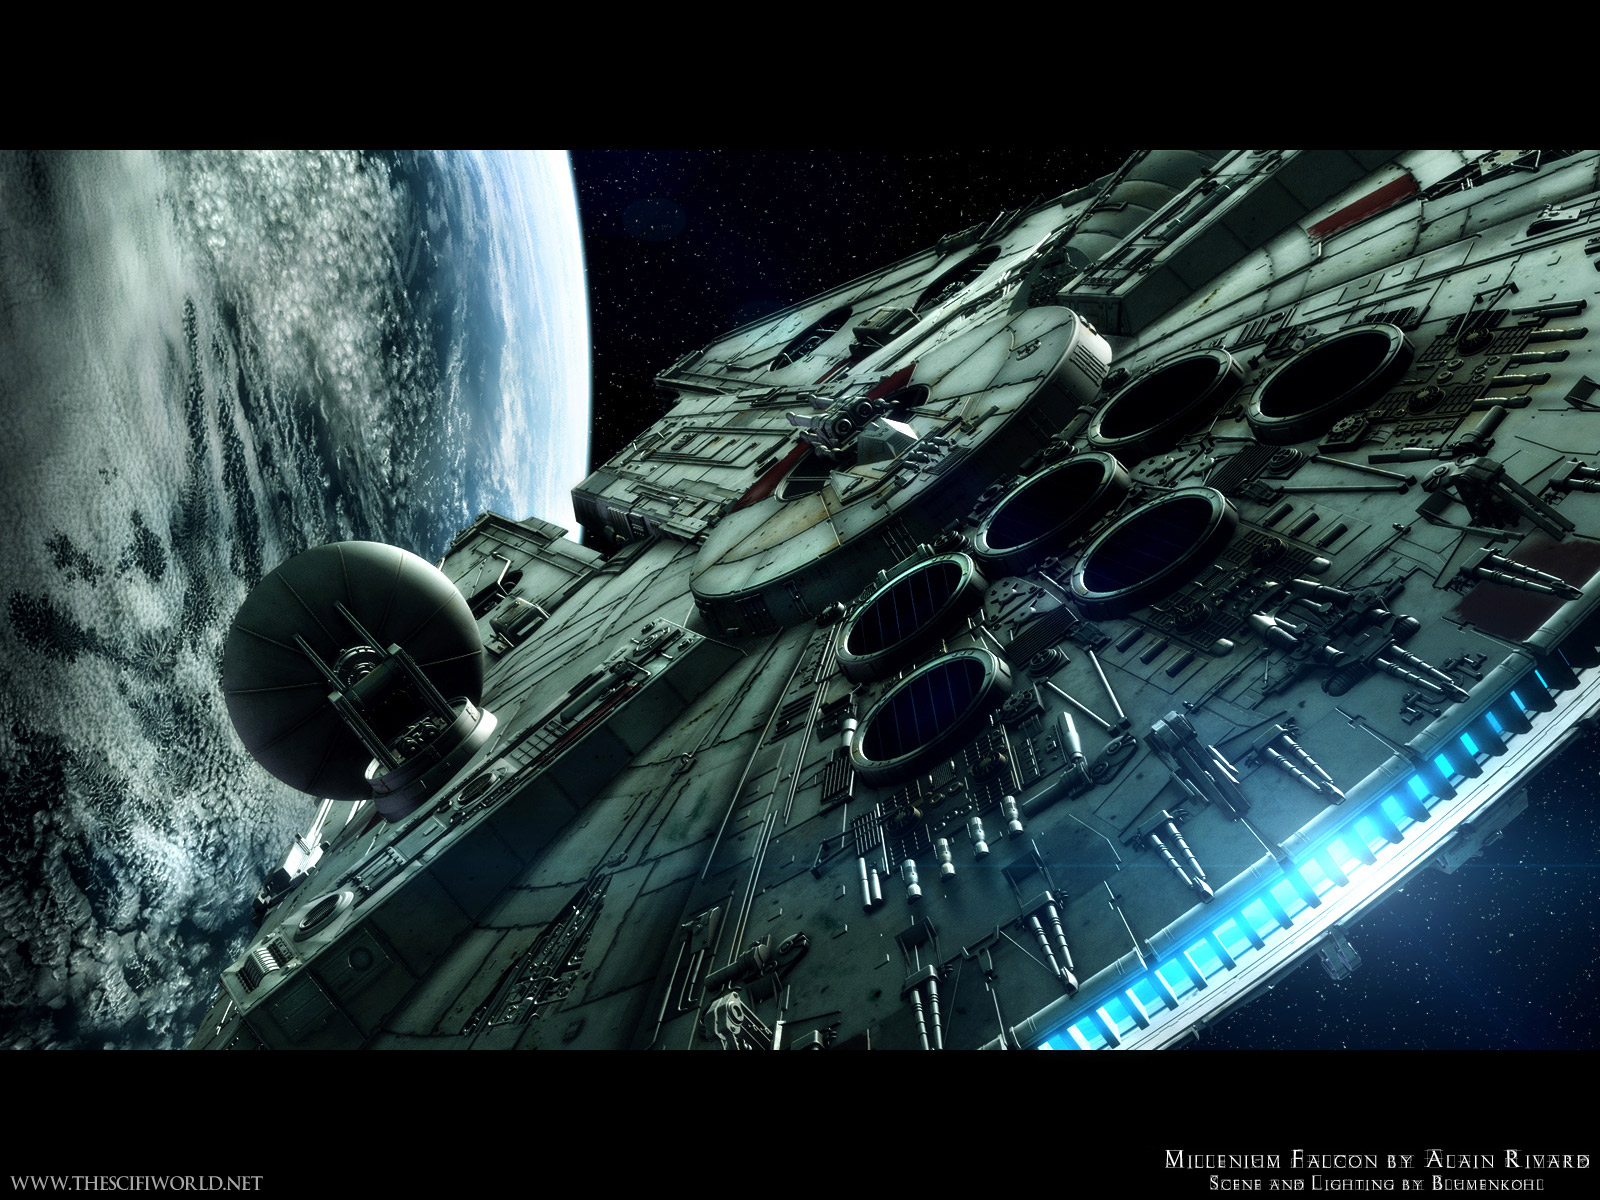 collection of cool desktop wallpaper pictures for Star Wars fans 1600x1200